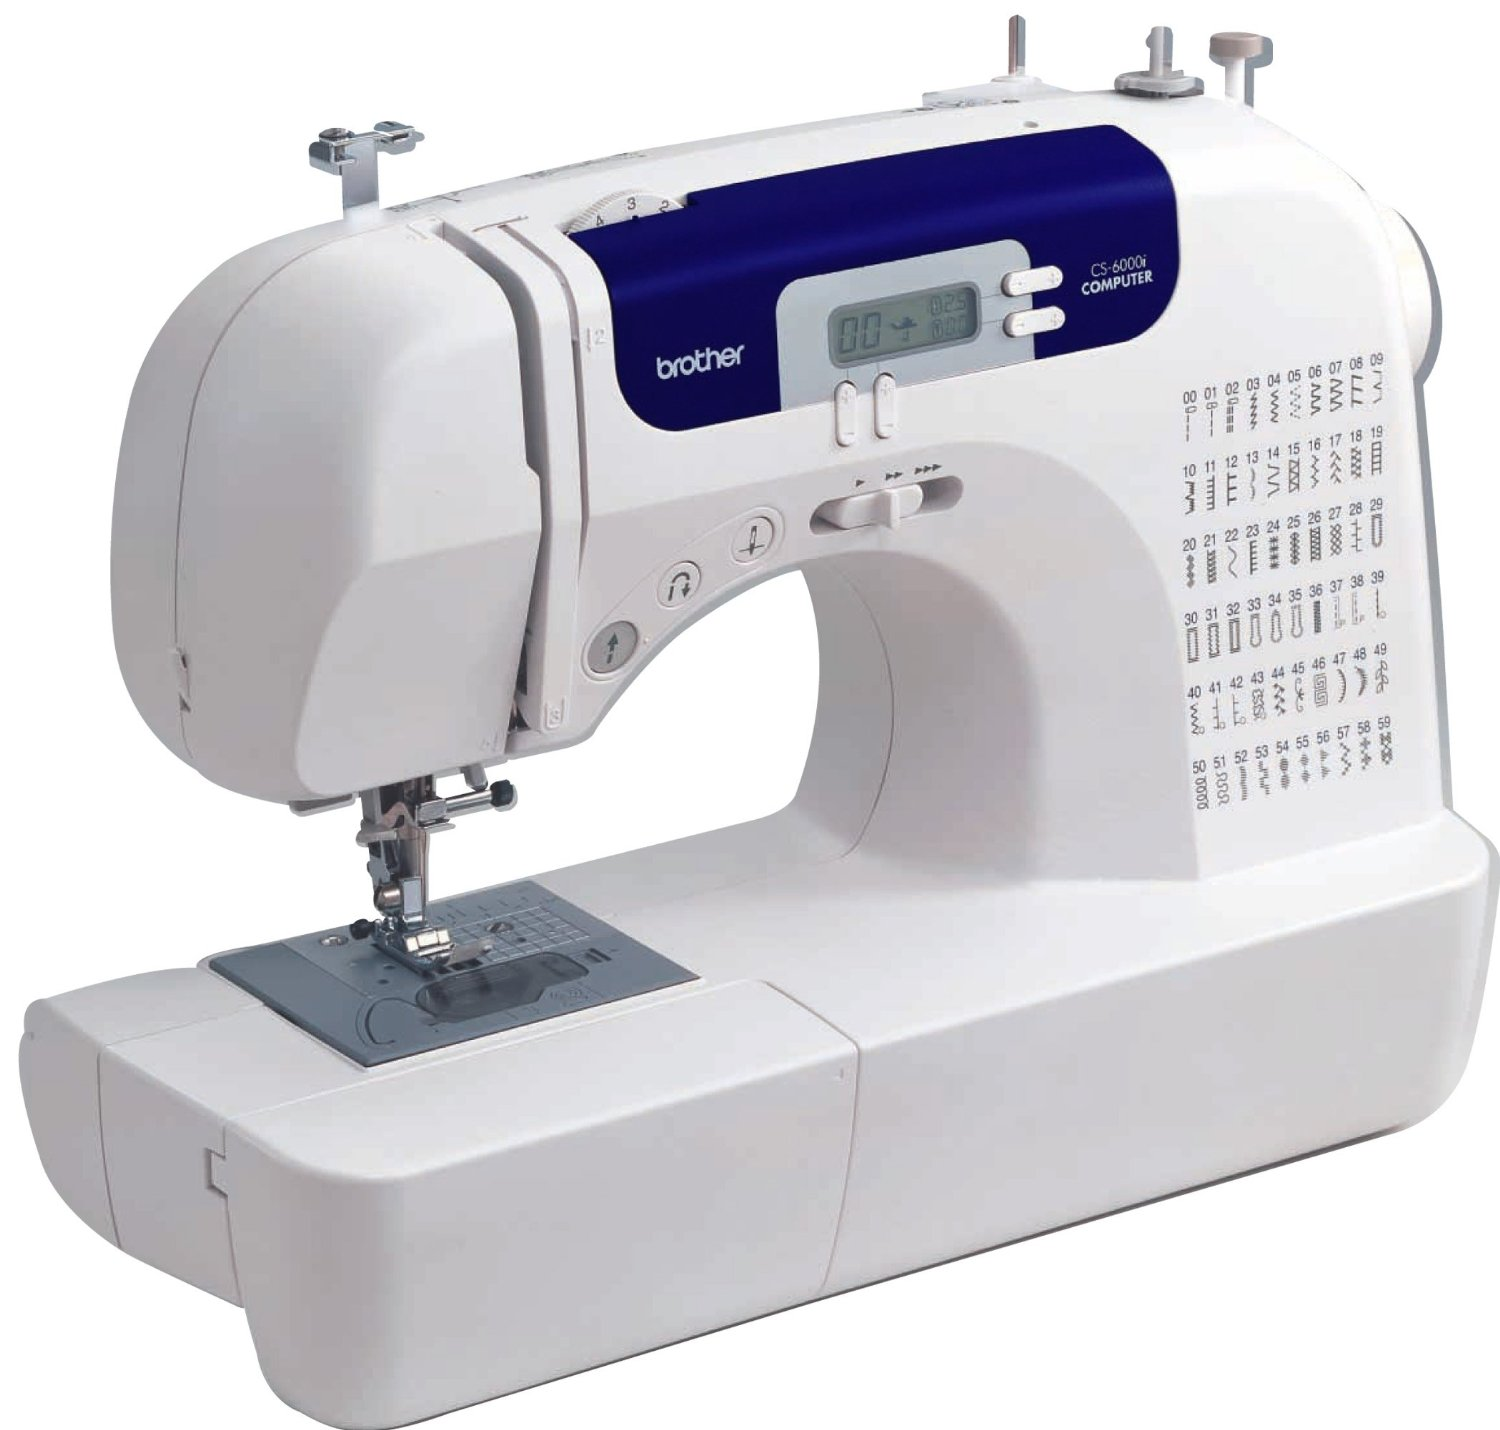 Brother 6000i - best computerized sewing machine on a budget